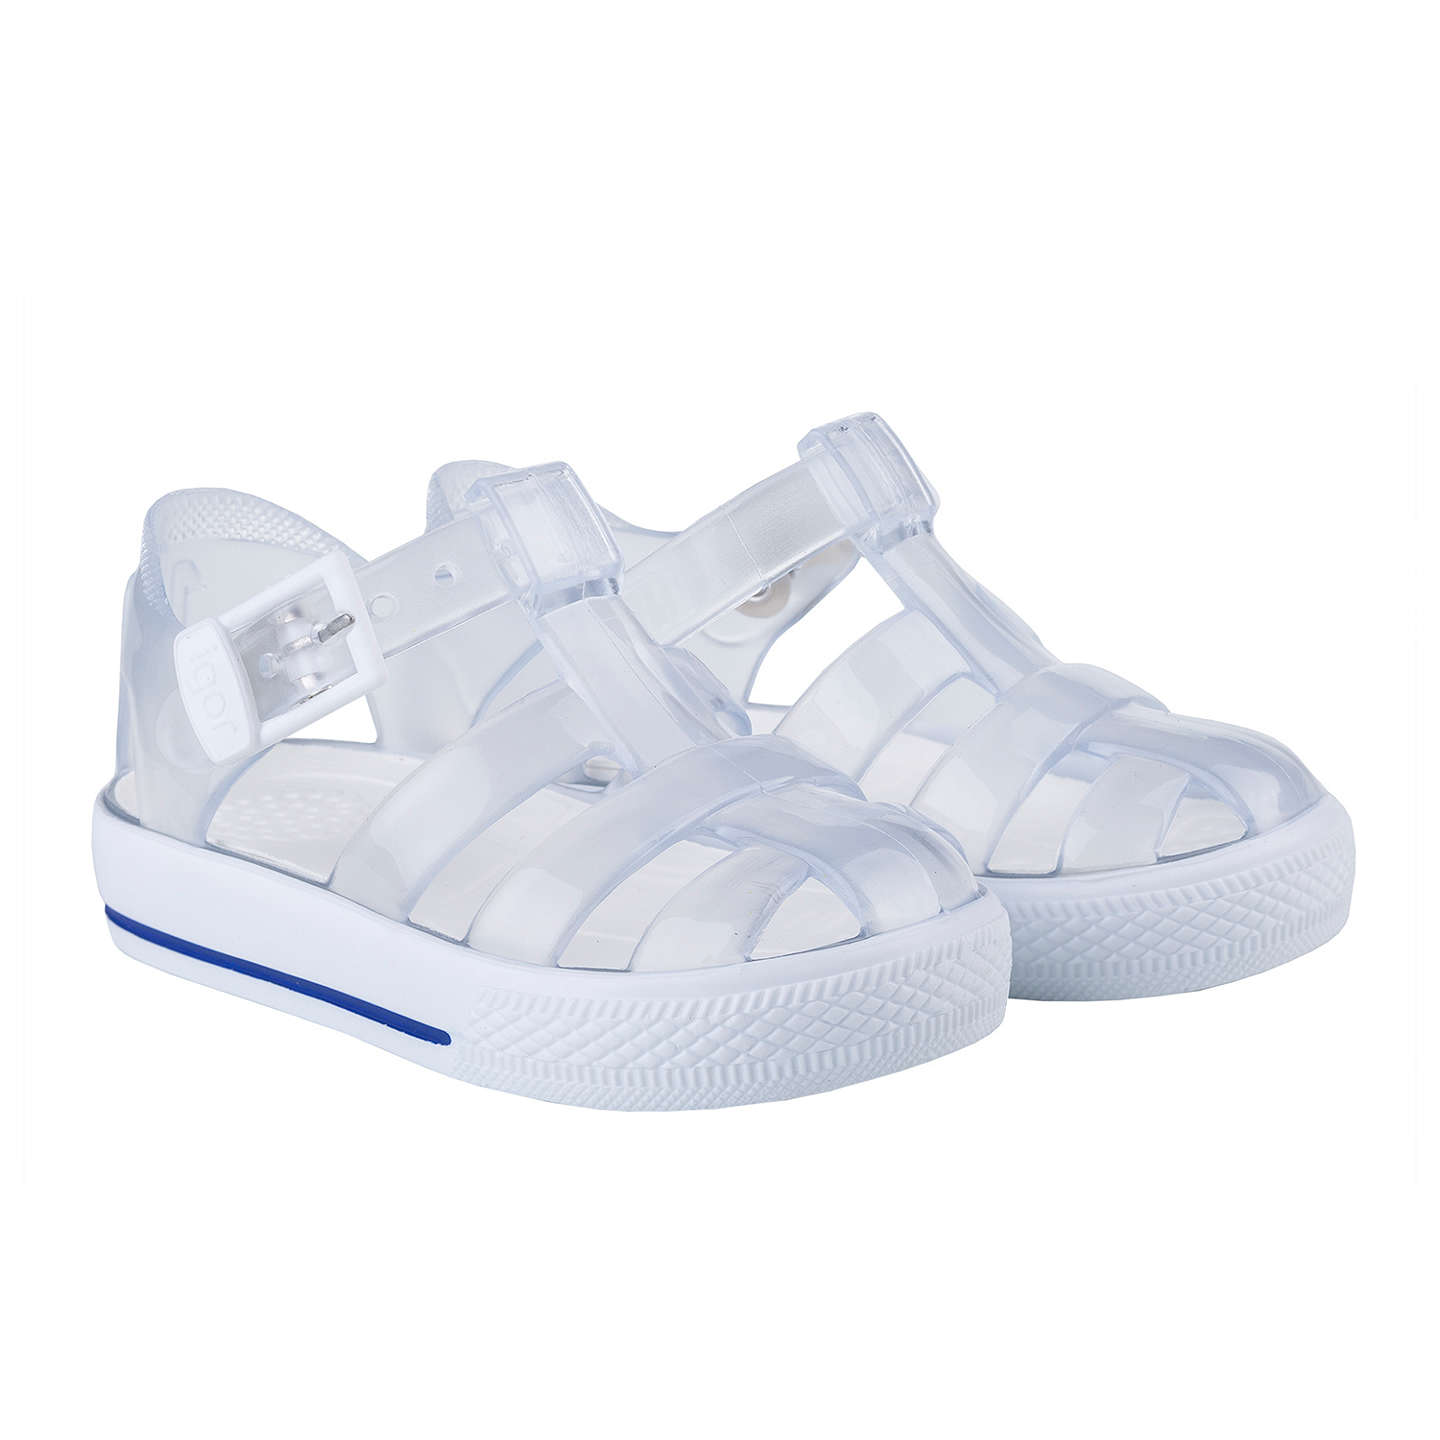 BuyIGOR Children's Tenis Jelly Shoes, White, 19 Online at johnlewis.com